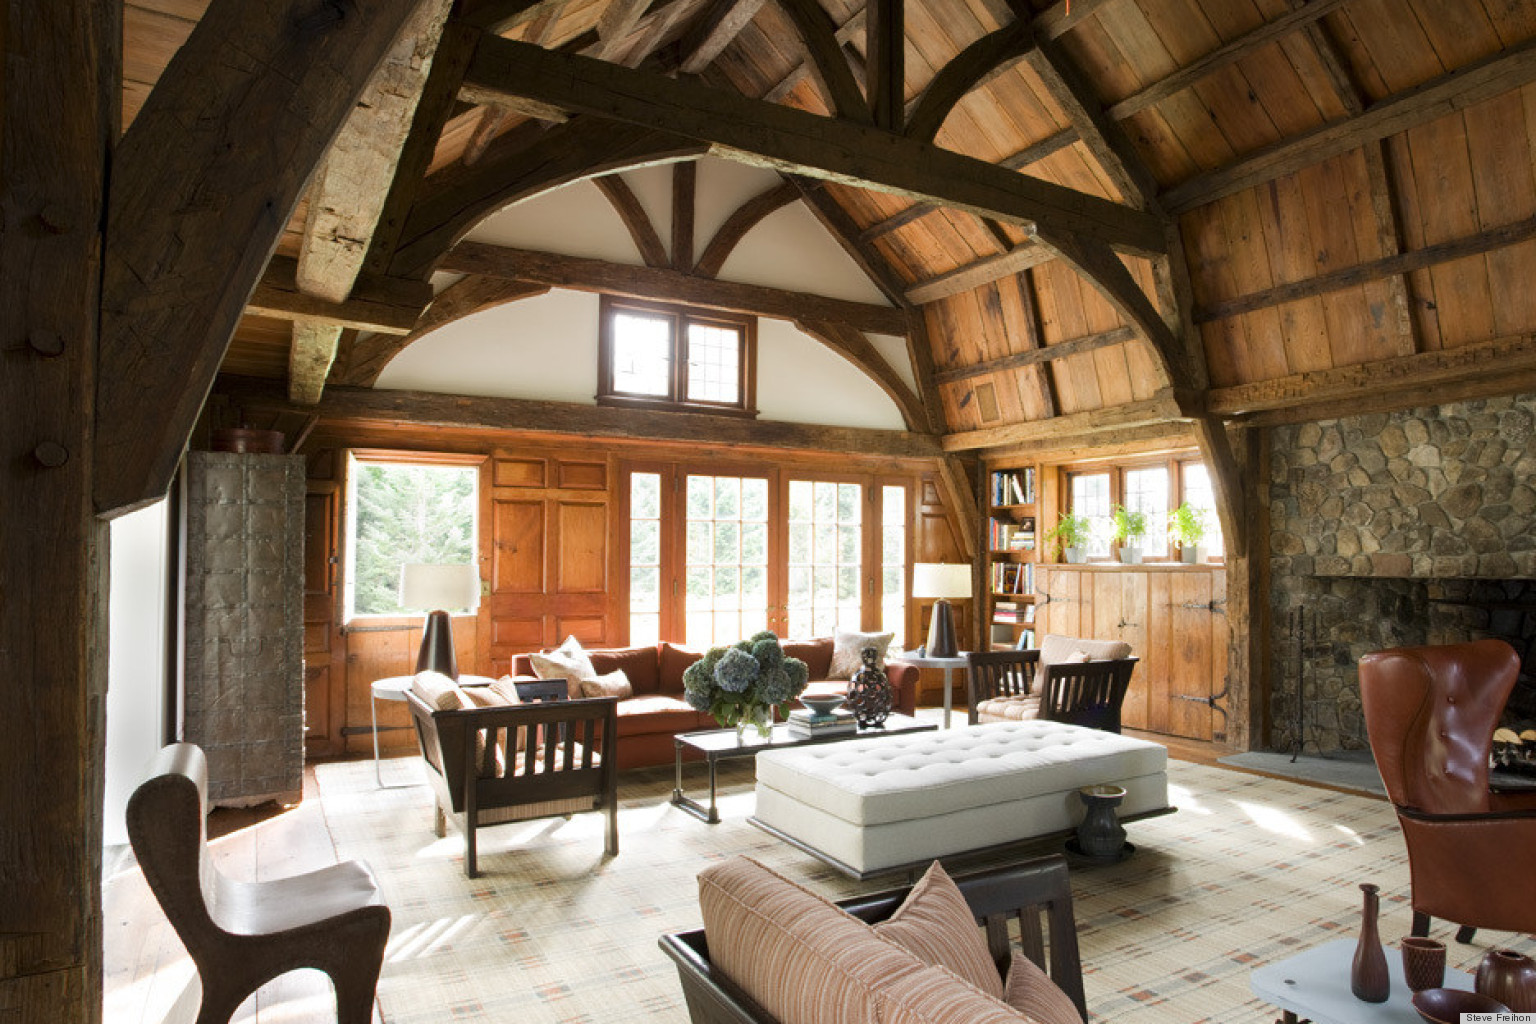 Interior designer shawn hendersons top five decorating tips for creating a gorgeous home photos huffpost